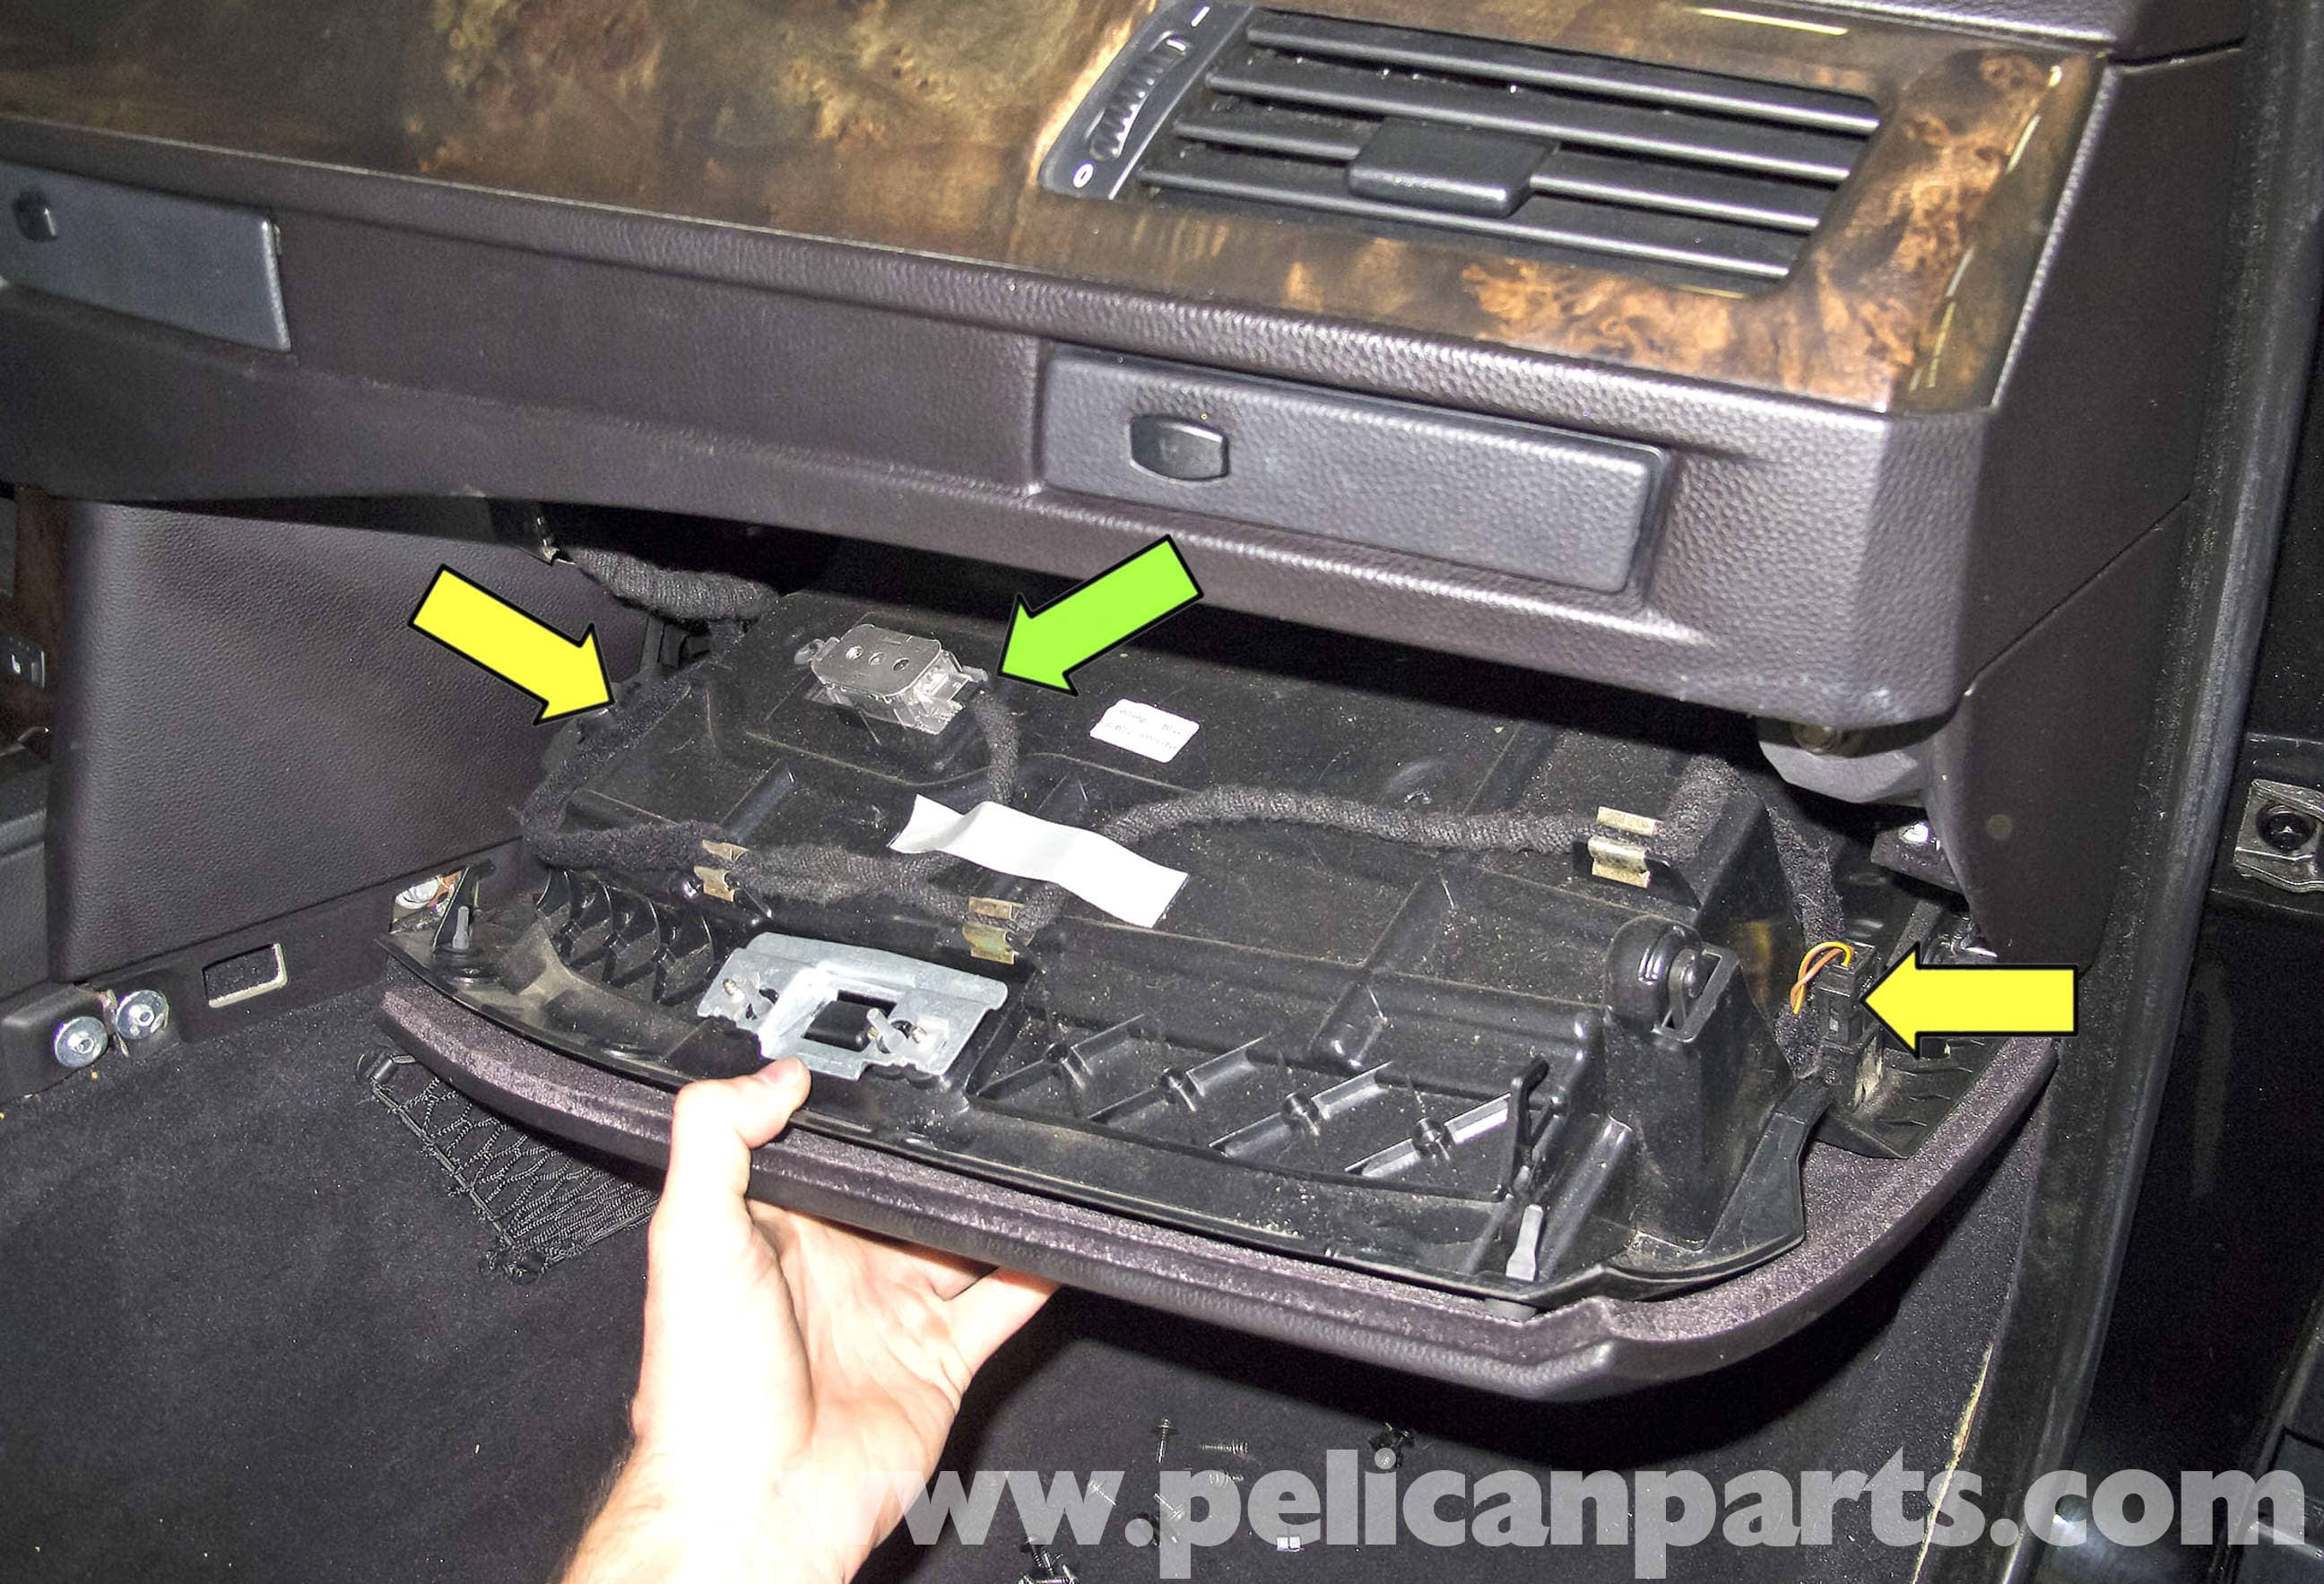 automotive electrical wiring diagram 1966 ford mustang horn bmw e60 5-series glove box replacement (2003-2008) - pelican parts technical article